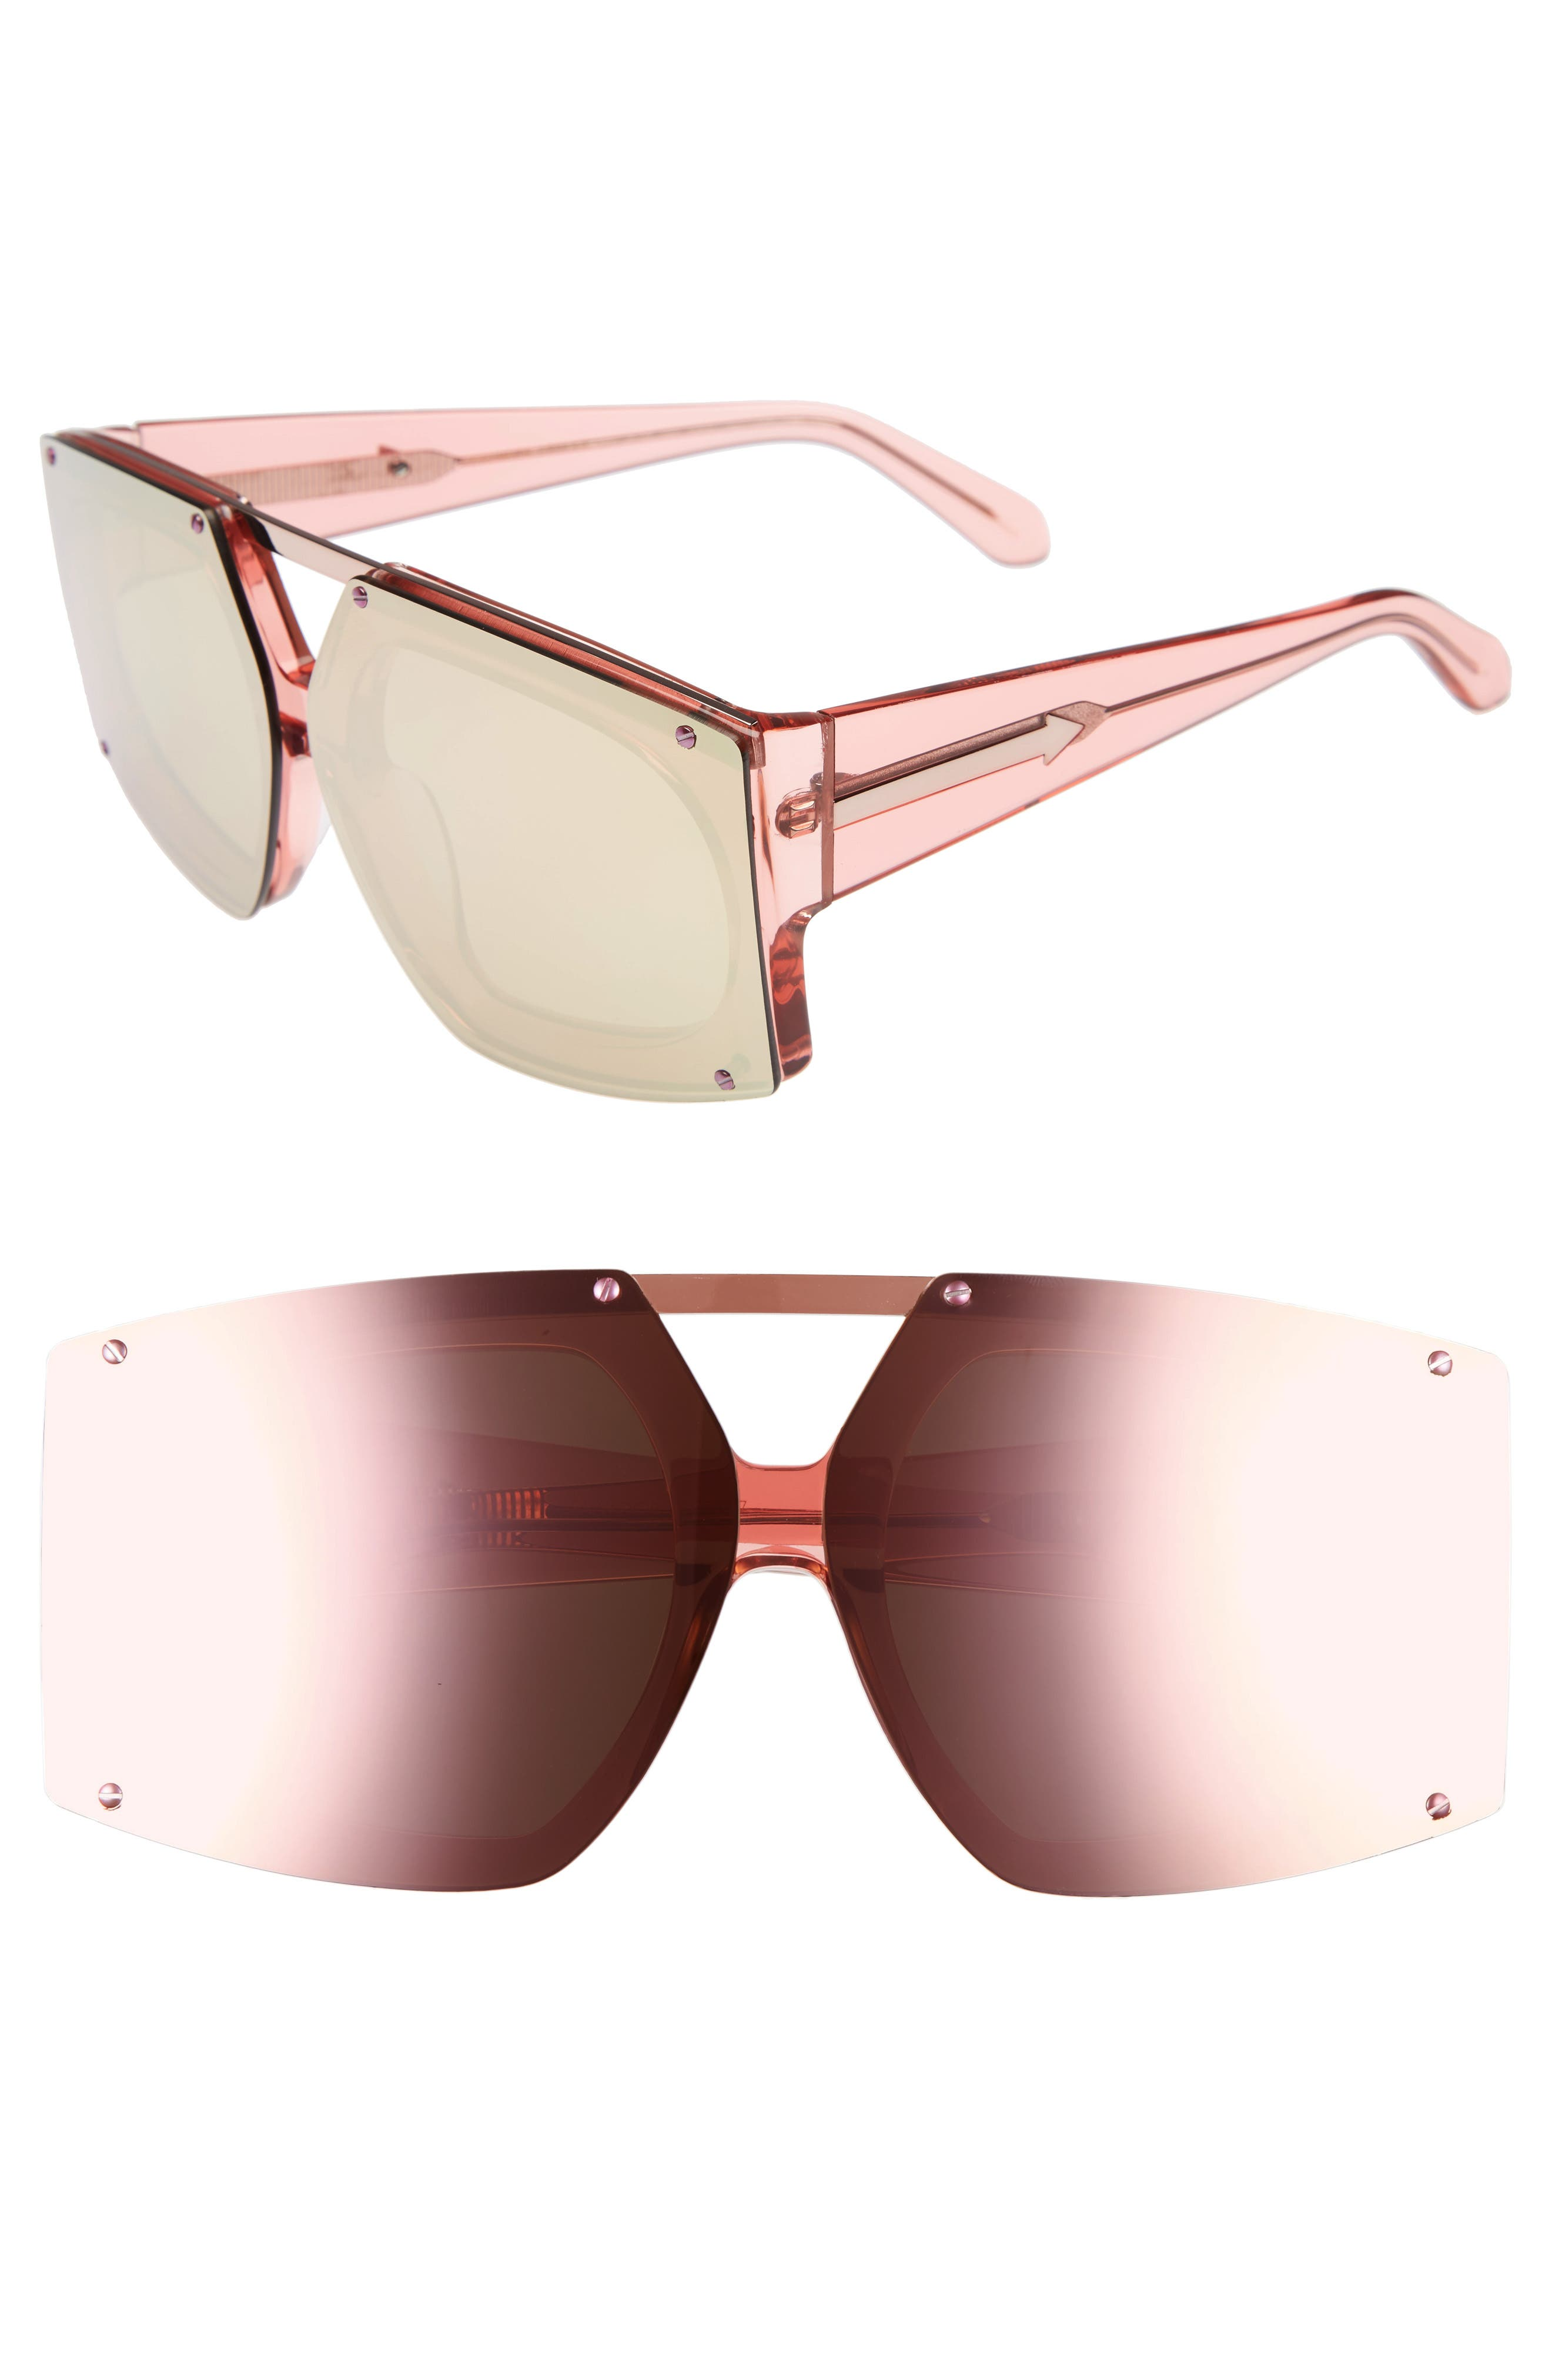 70mm Mirrored Oversized Sunglasses,                             Main thumbnail 3, color,